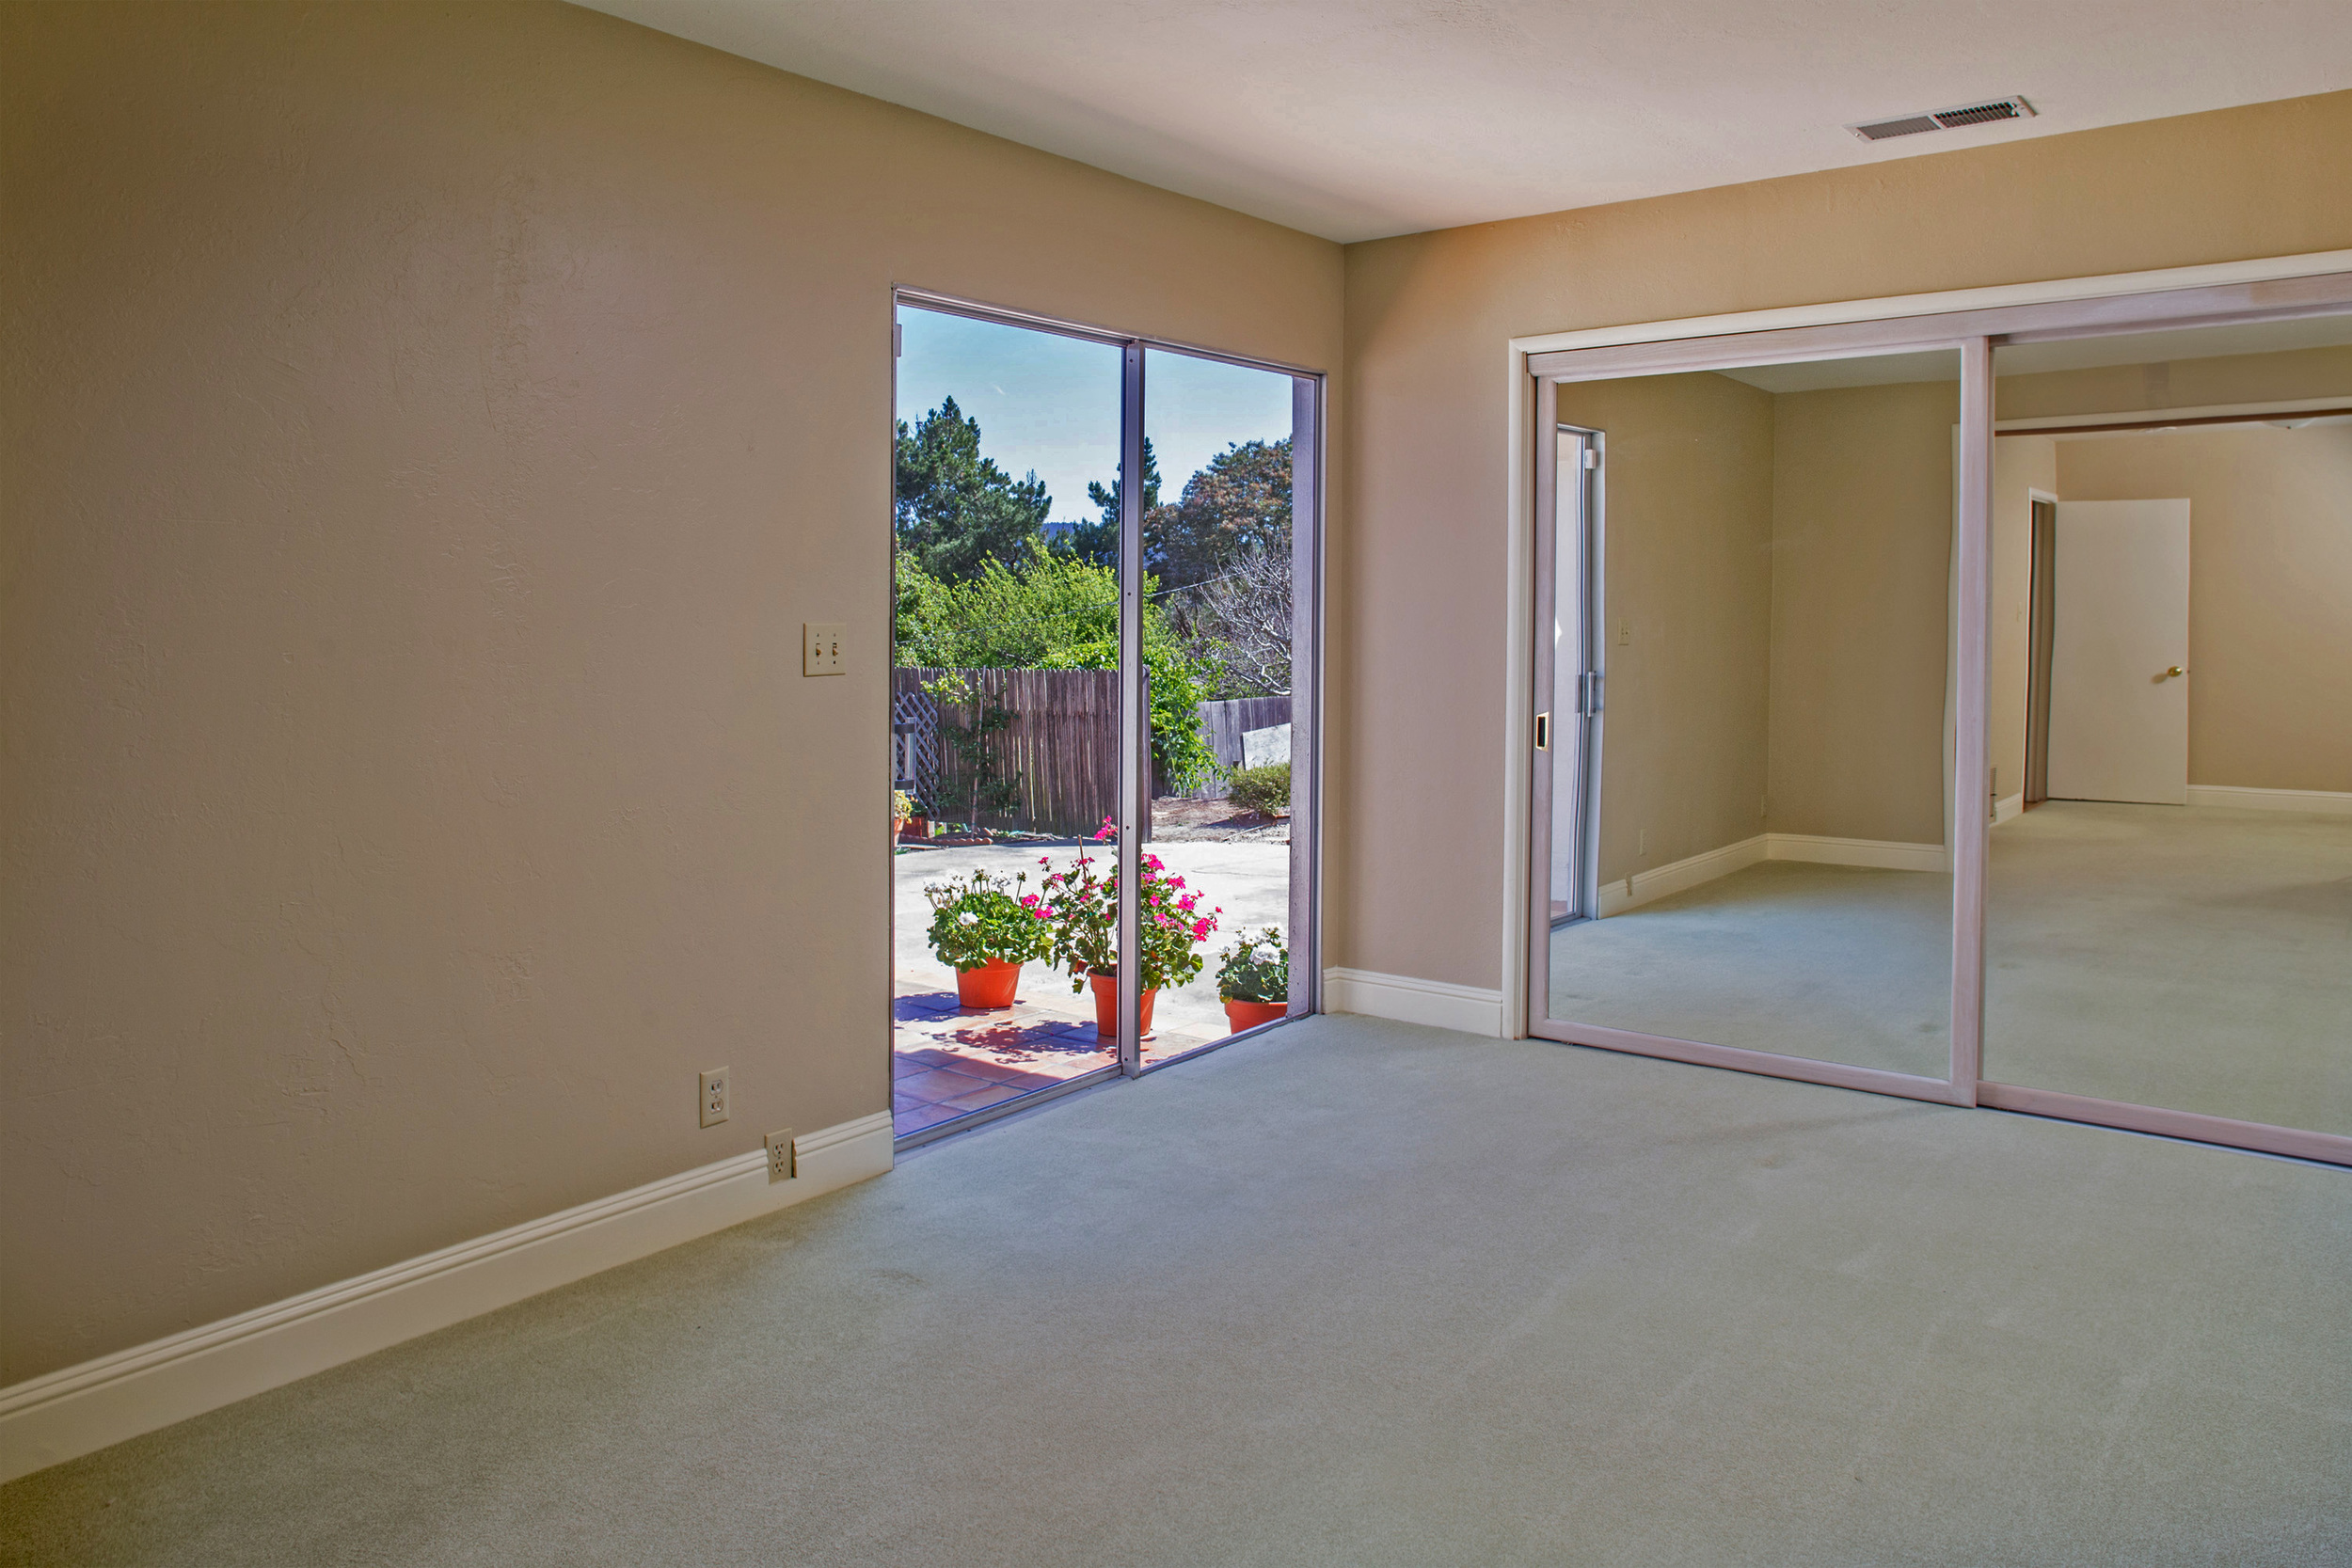 11-bedroom with sliding glass doors that exits to a beautiful tile patio.jpg